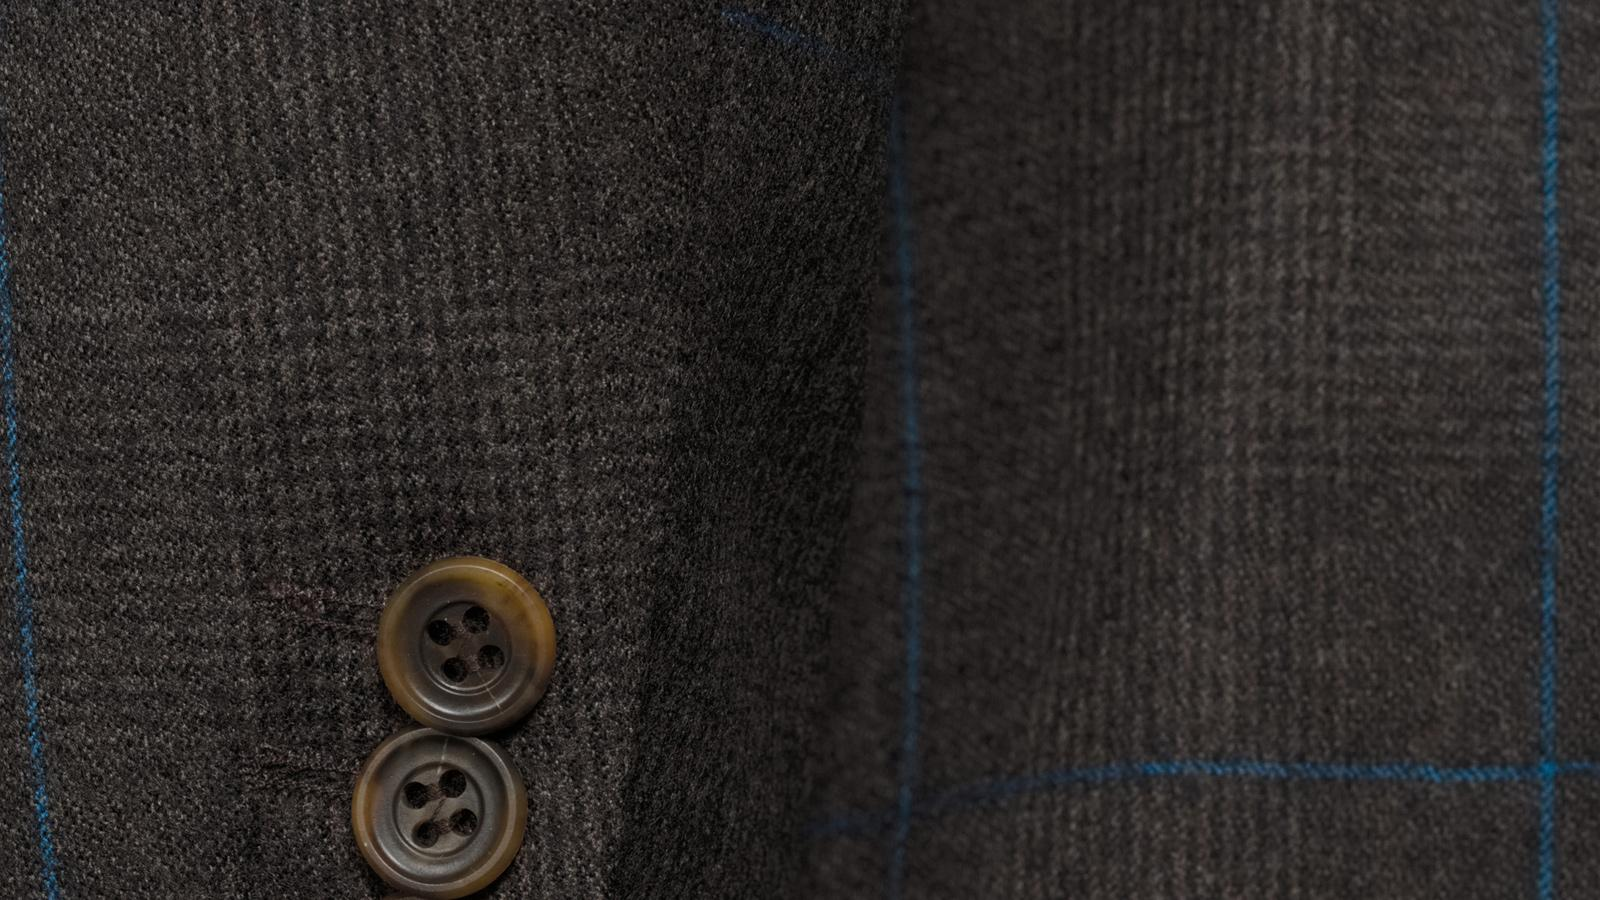 Brown Plaid With Blue Overcheck Suit - slider image 1